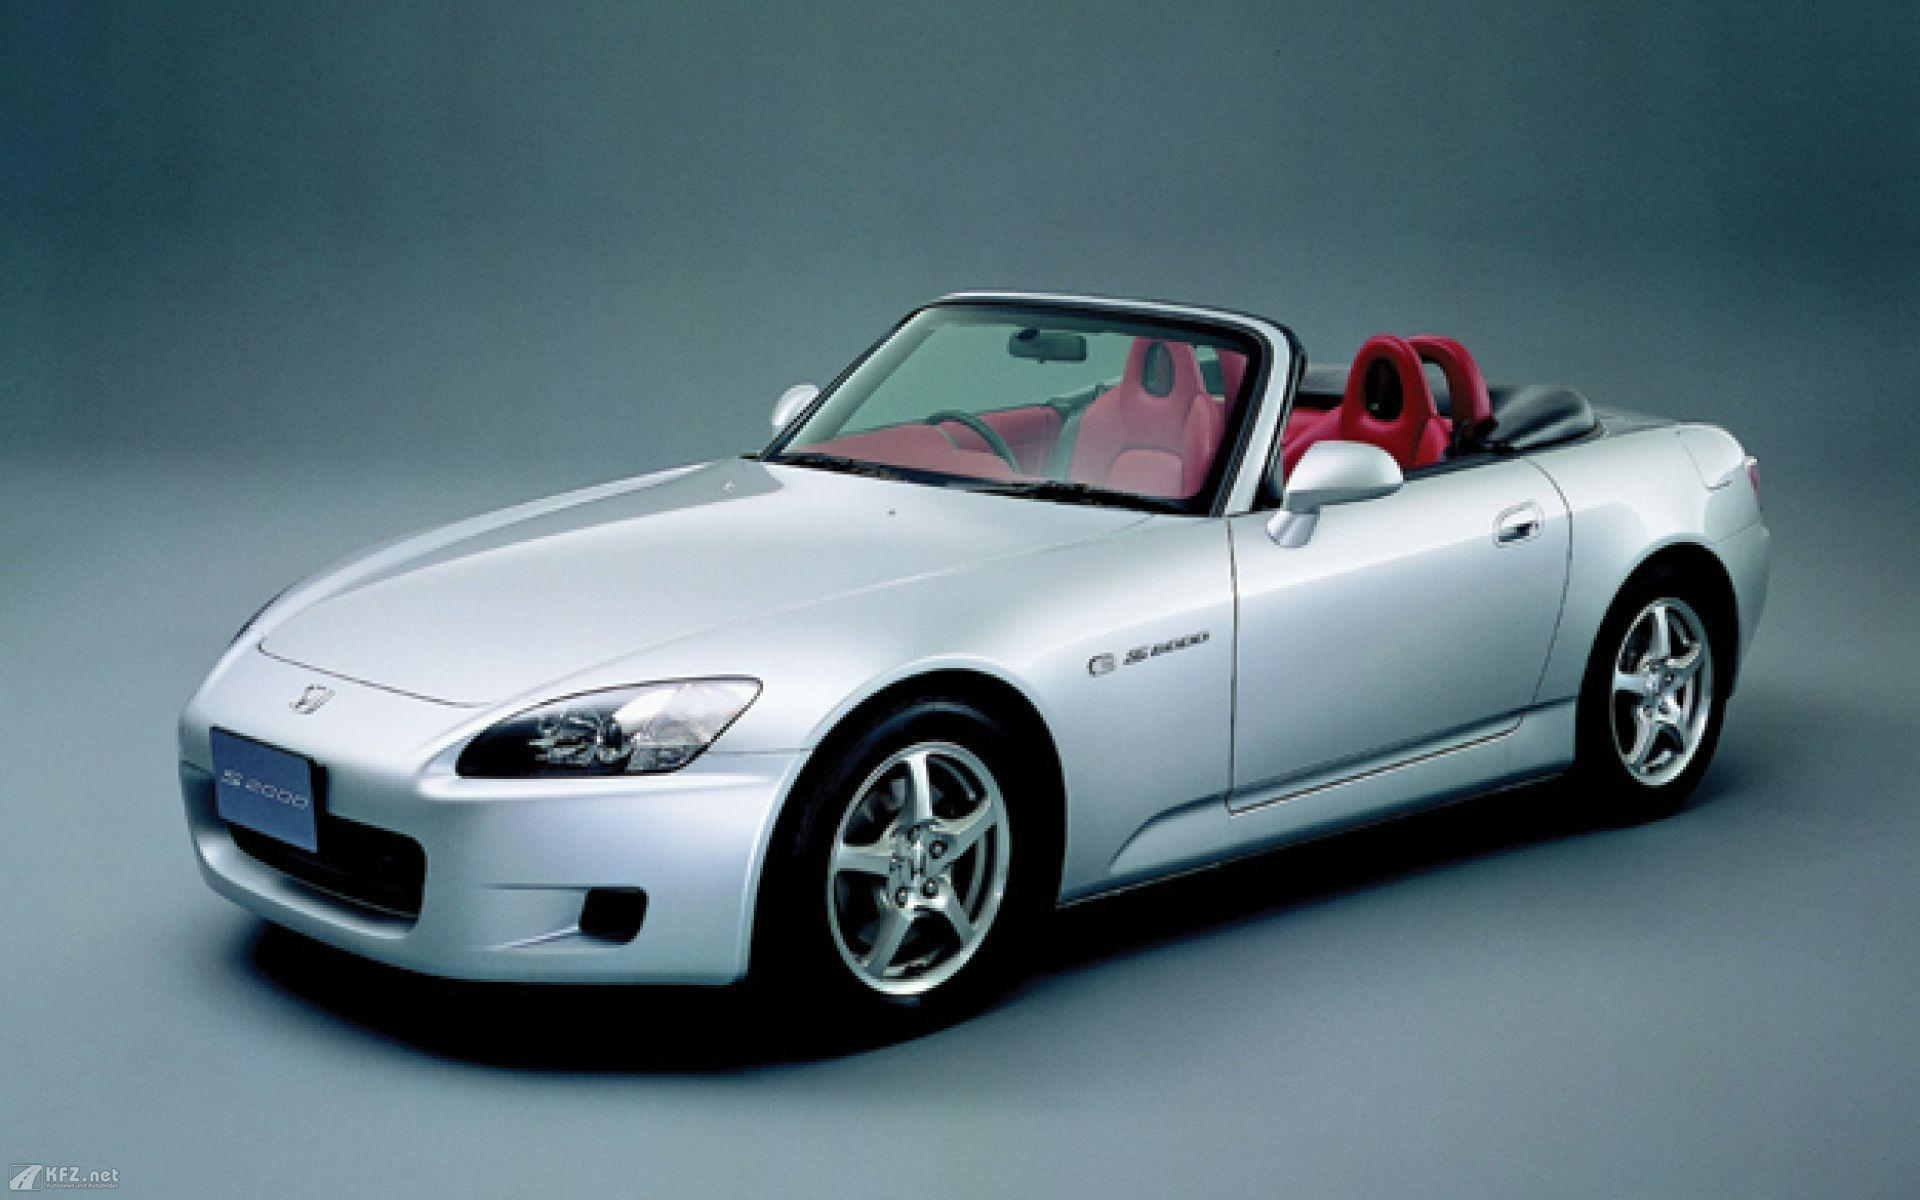 Image For > Honda S2000 Wallpapers 1920x1200